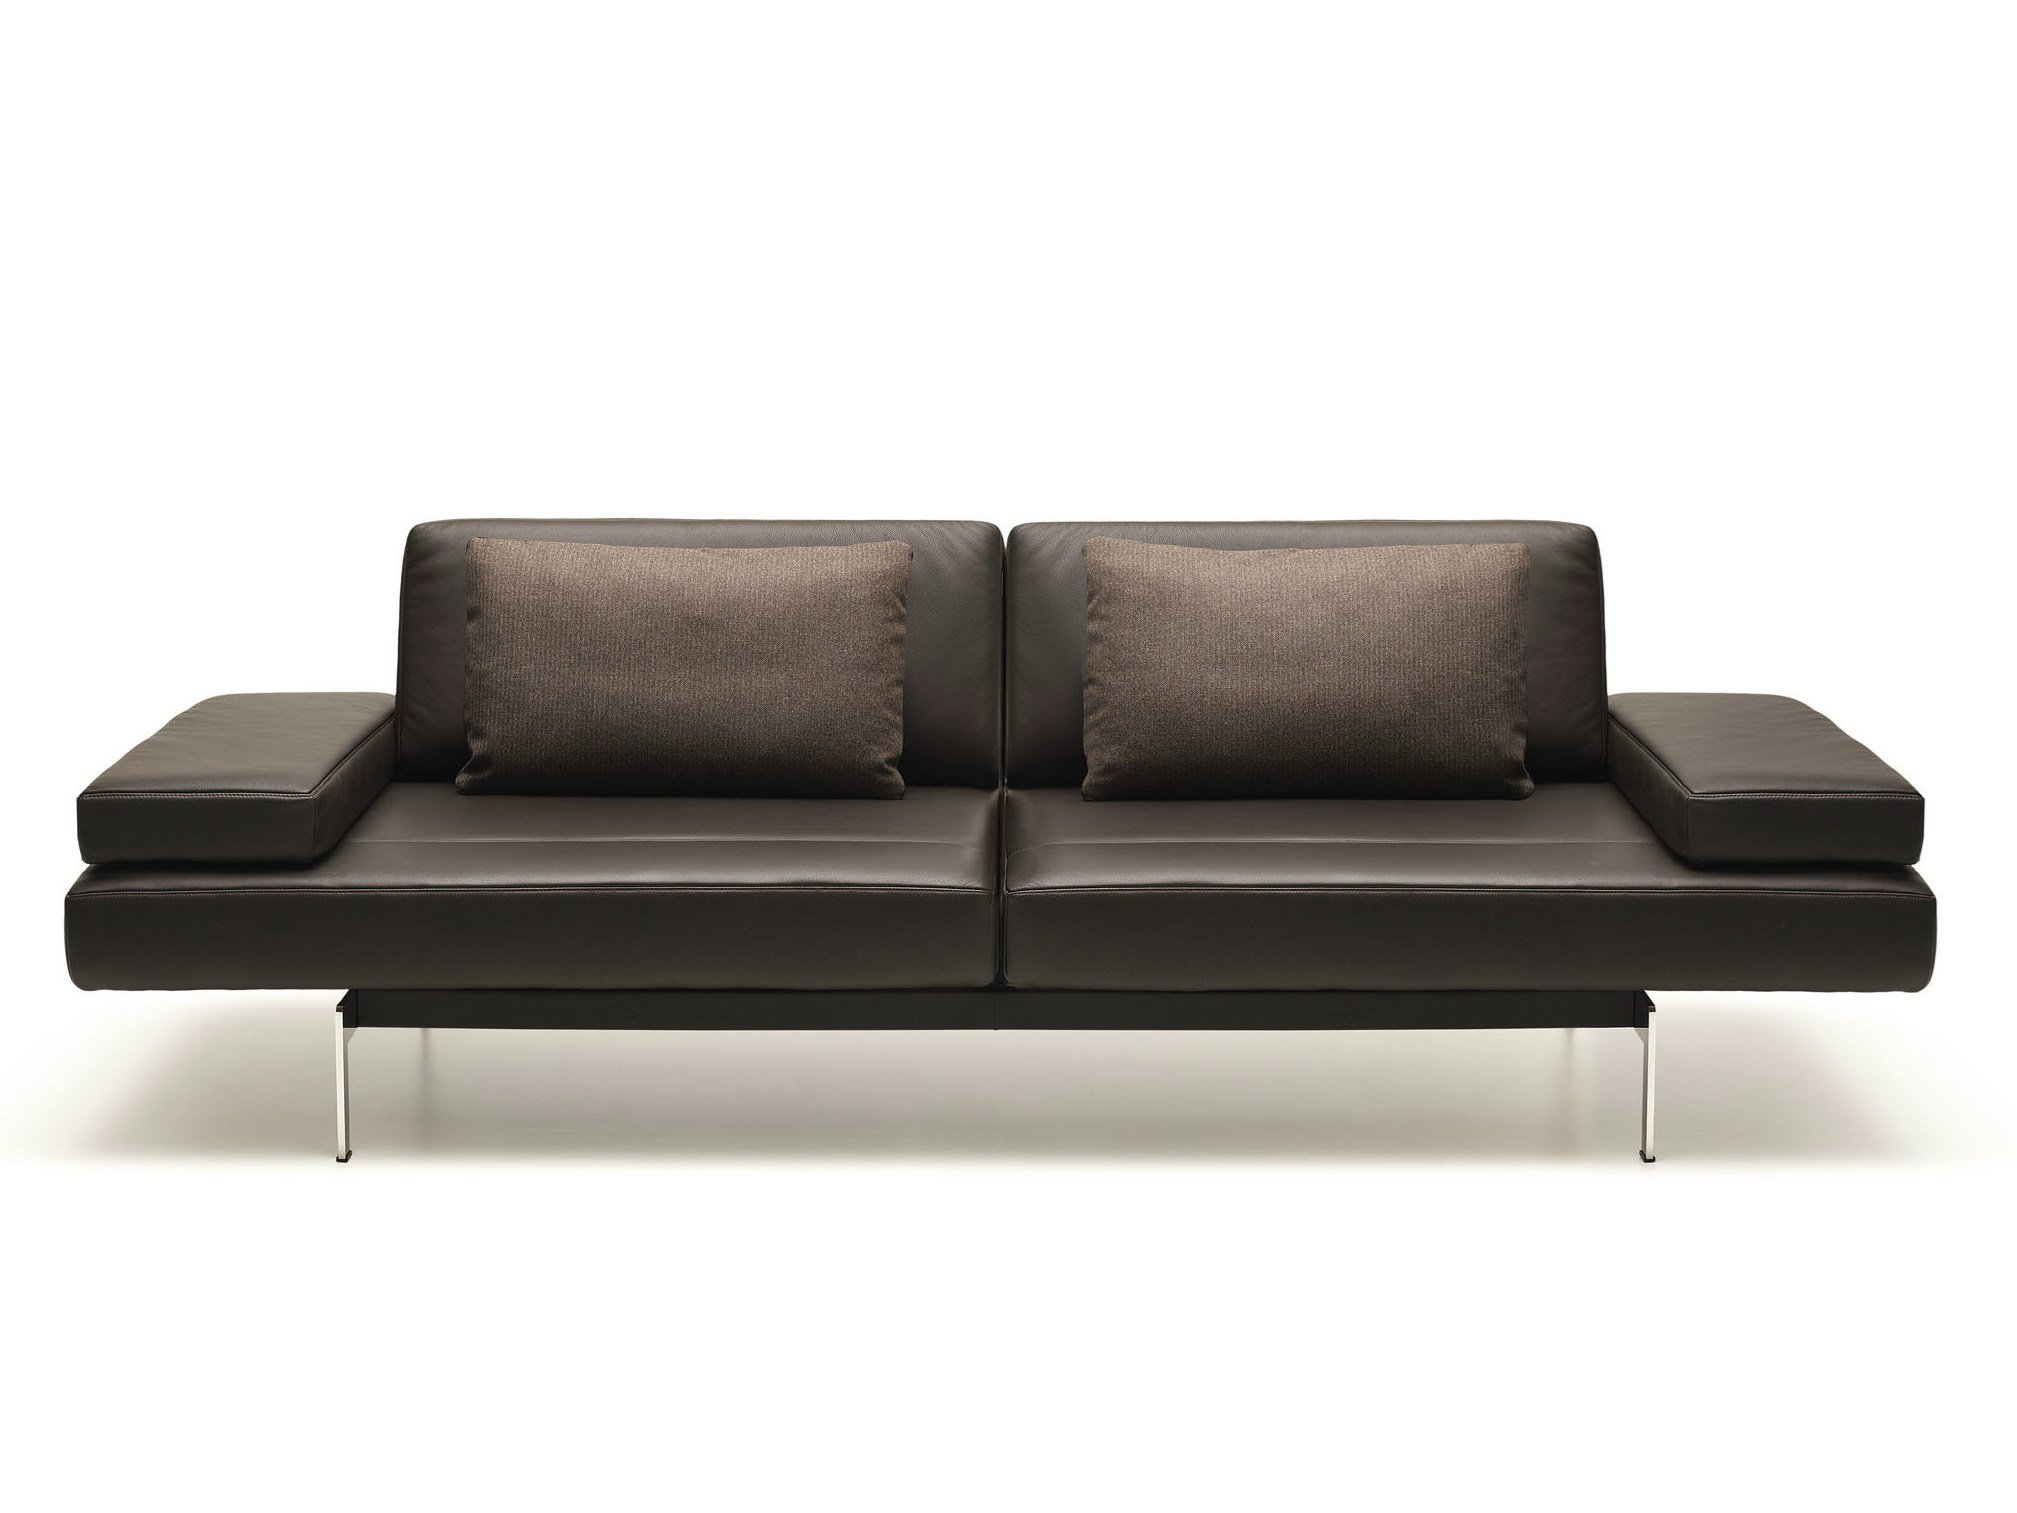 modular leather sofa ds 904 by de sede design nicolaus maniatis thomas kirn. Black Bedroom Furniture Sets. Home Design Ideas